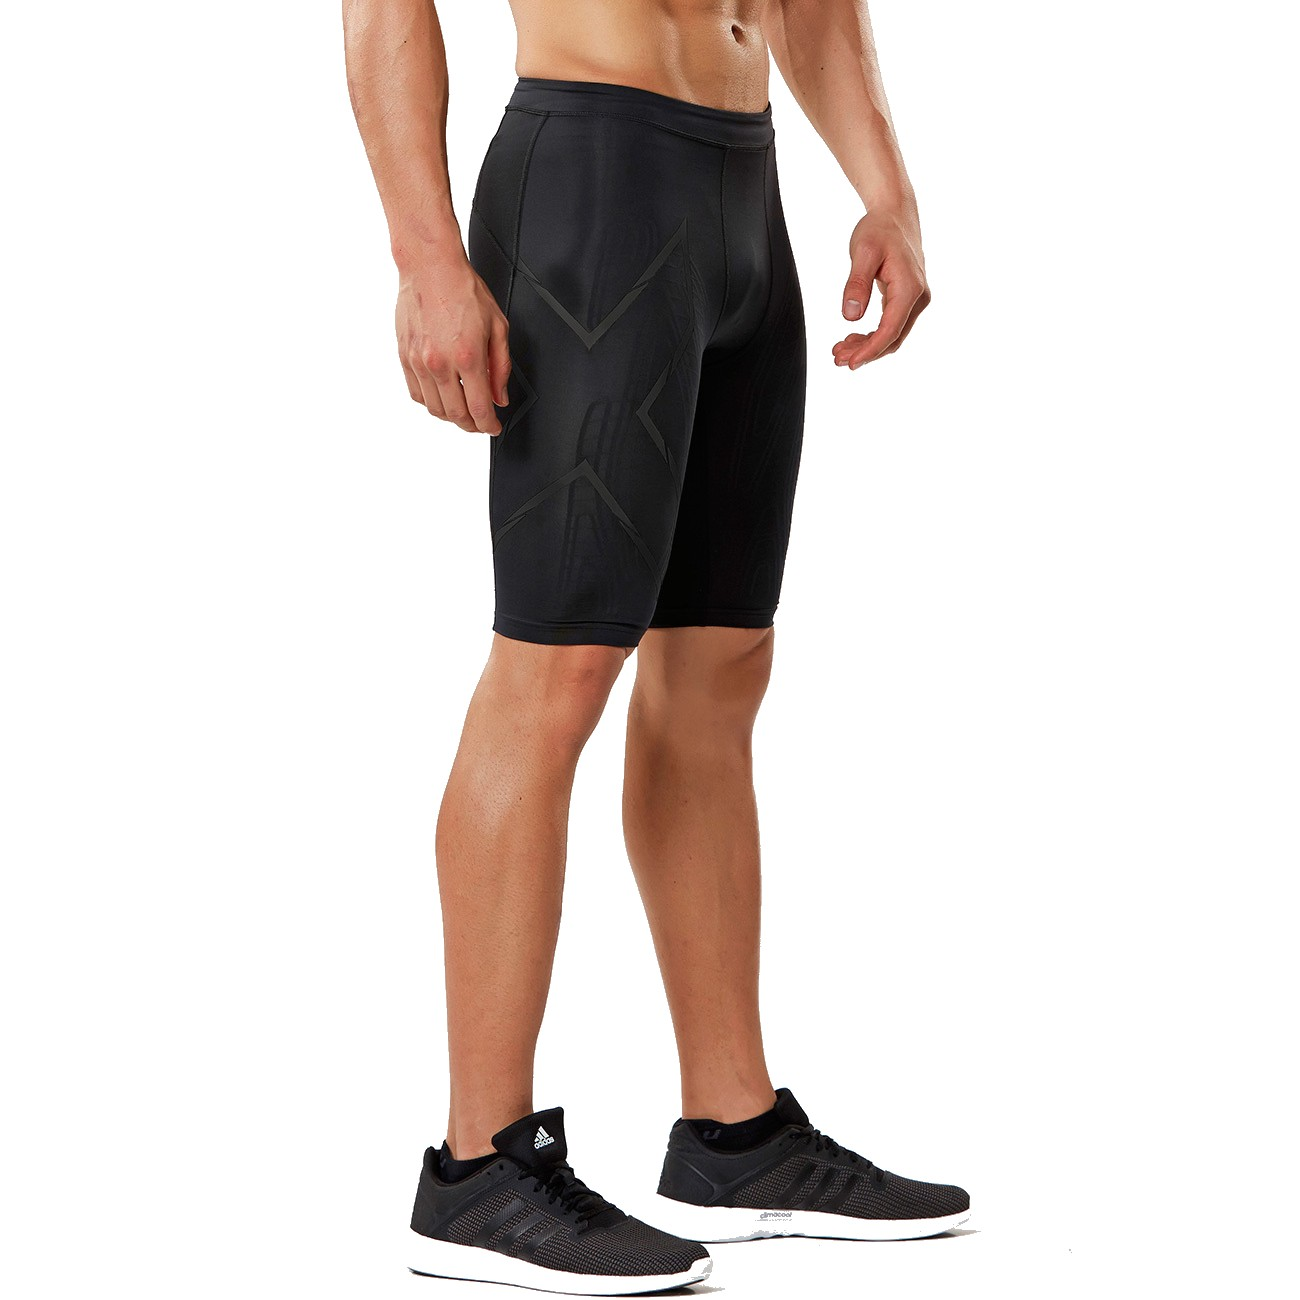 2XU MCS Run Compression Short Men's Black/Nero Reflective